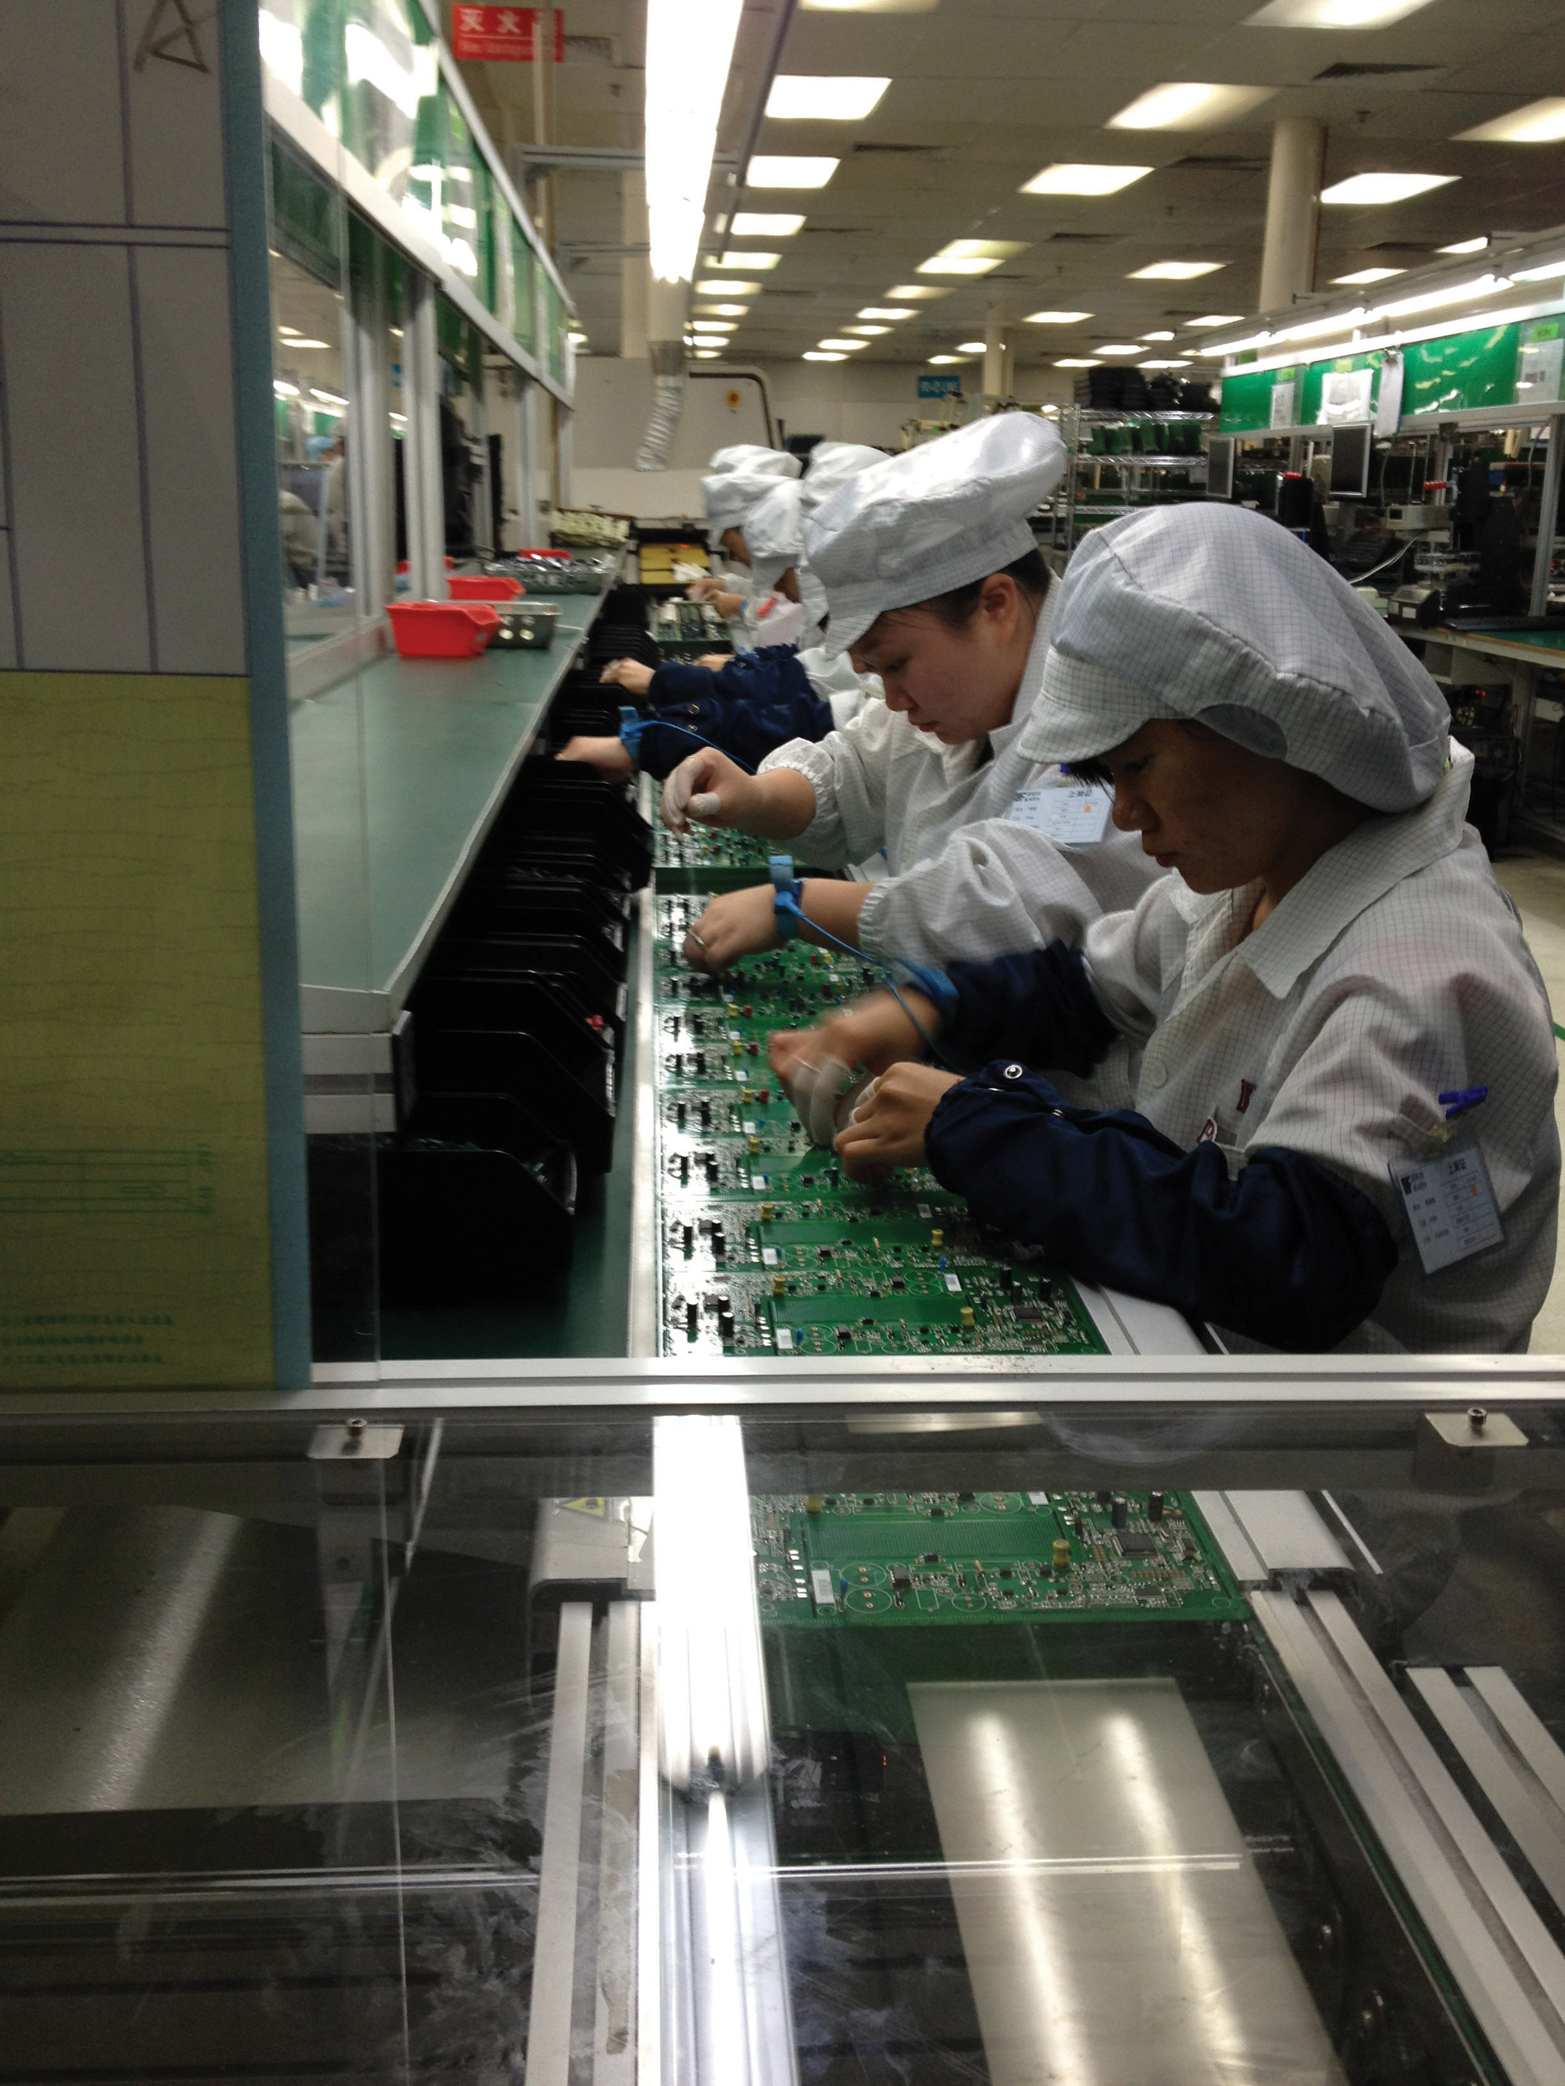 The Future Of Product Design Oreilly Media It Comes To Sustainable If Has A Circuit Board Factory Workers In China Assemble Boards Photo Courtesy Dragon Innovation